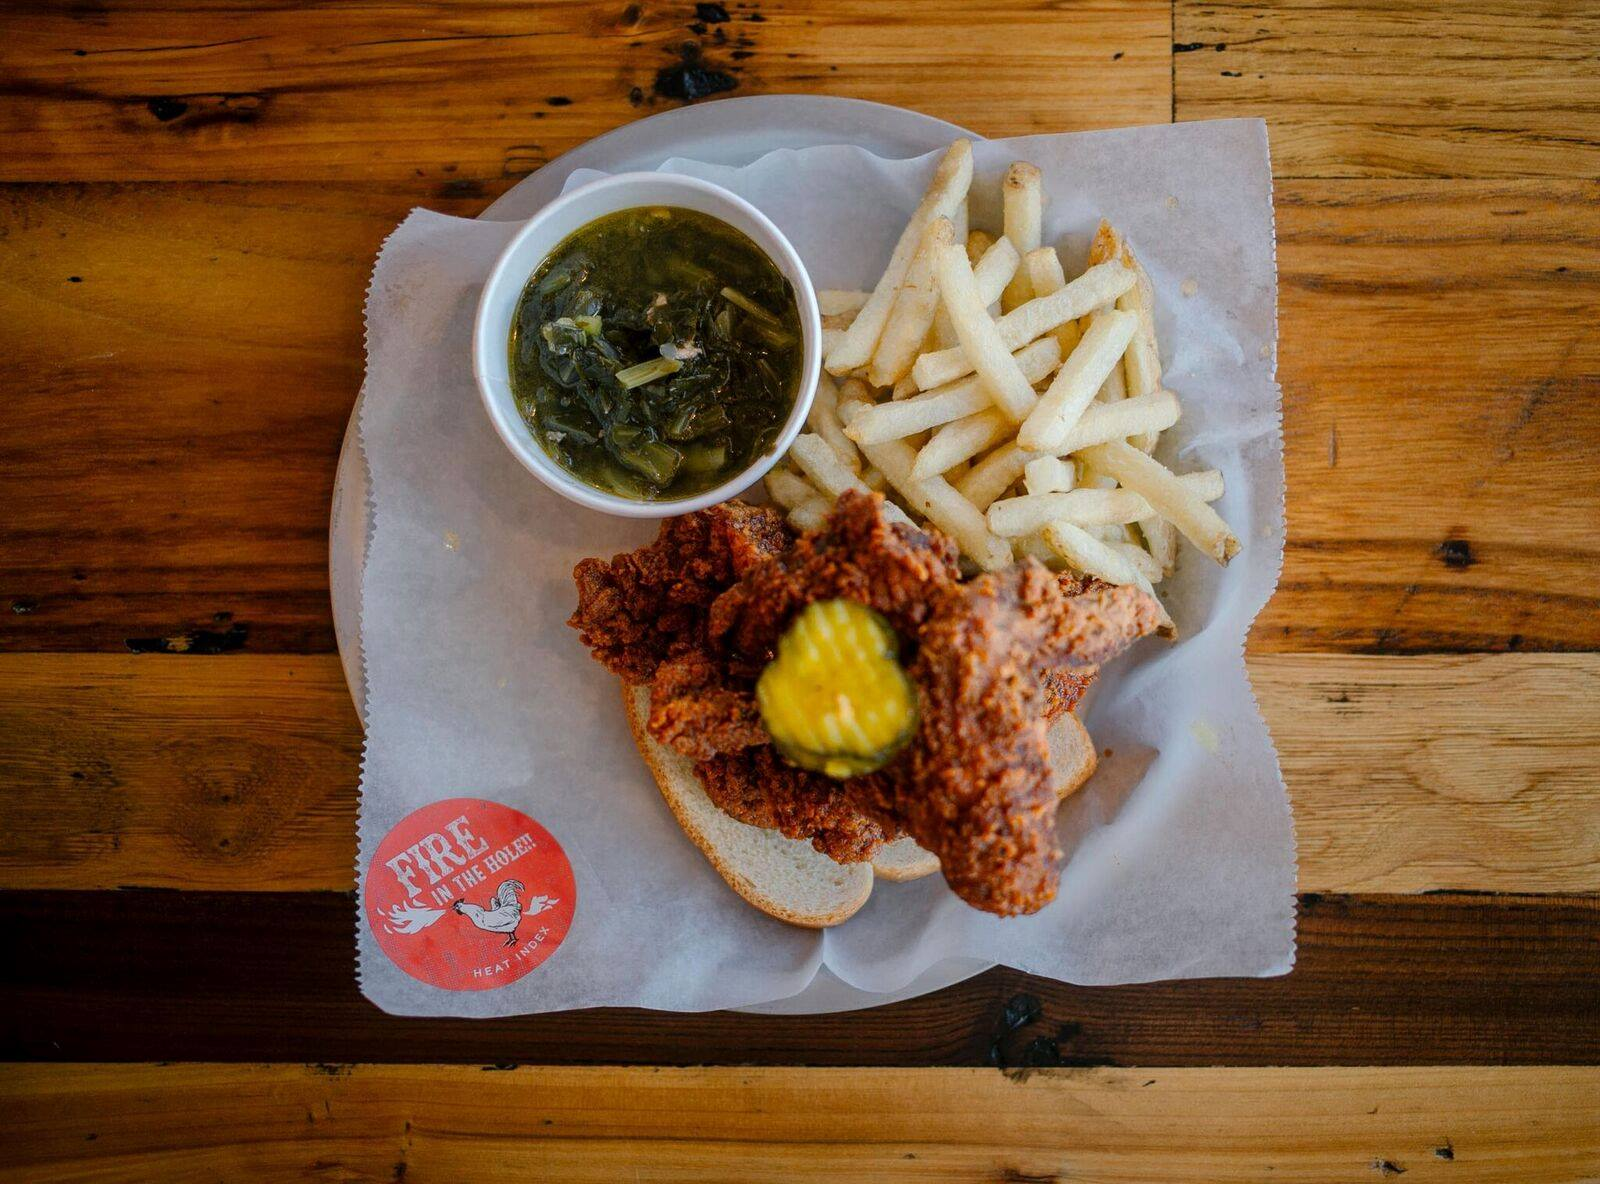 The hot chicken at Tumble 22